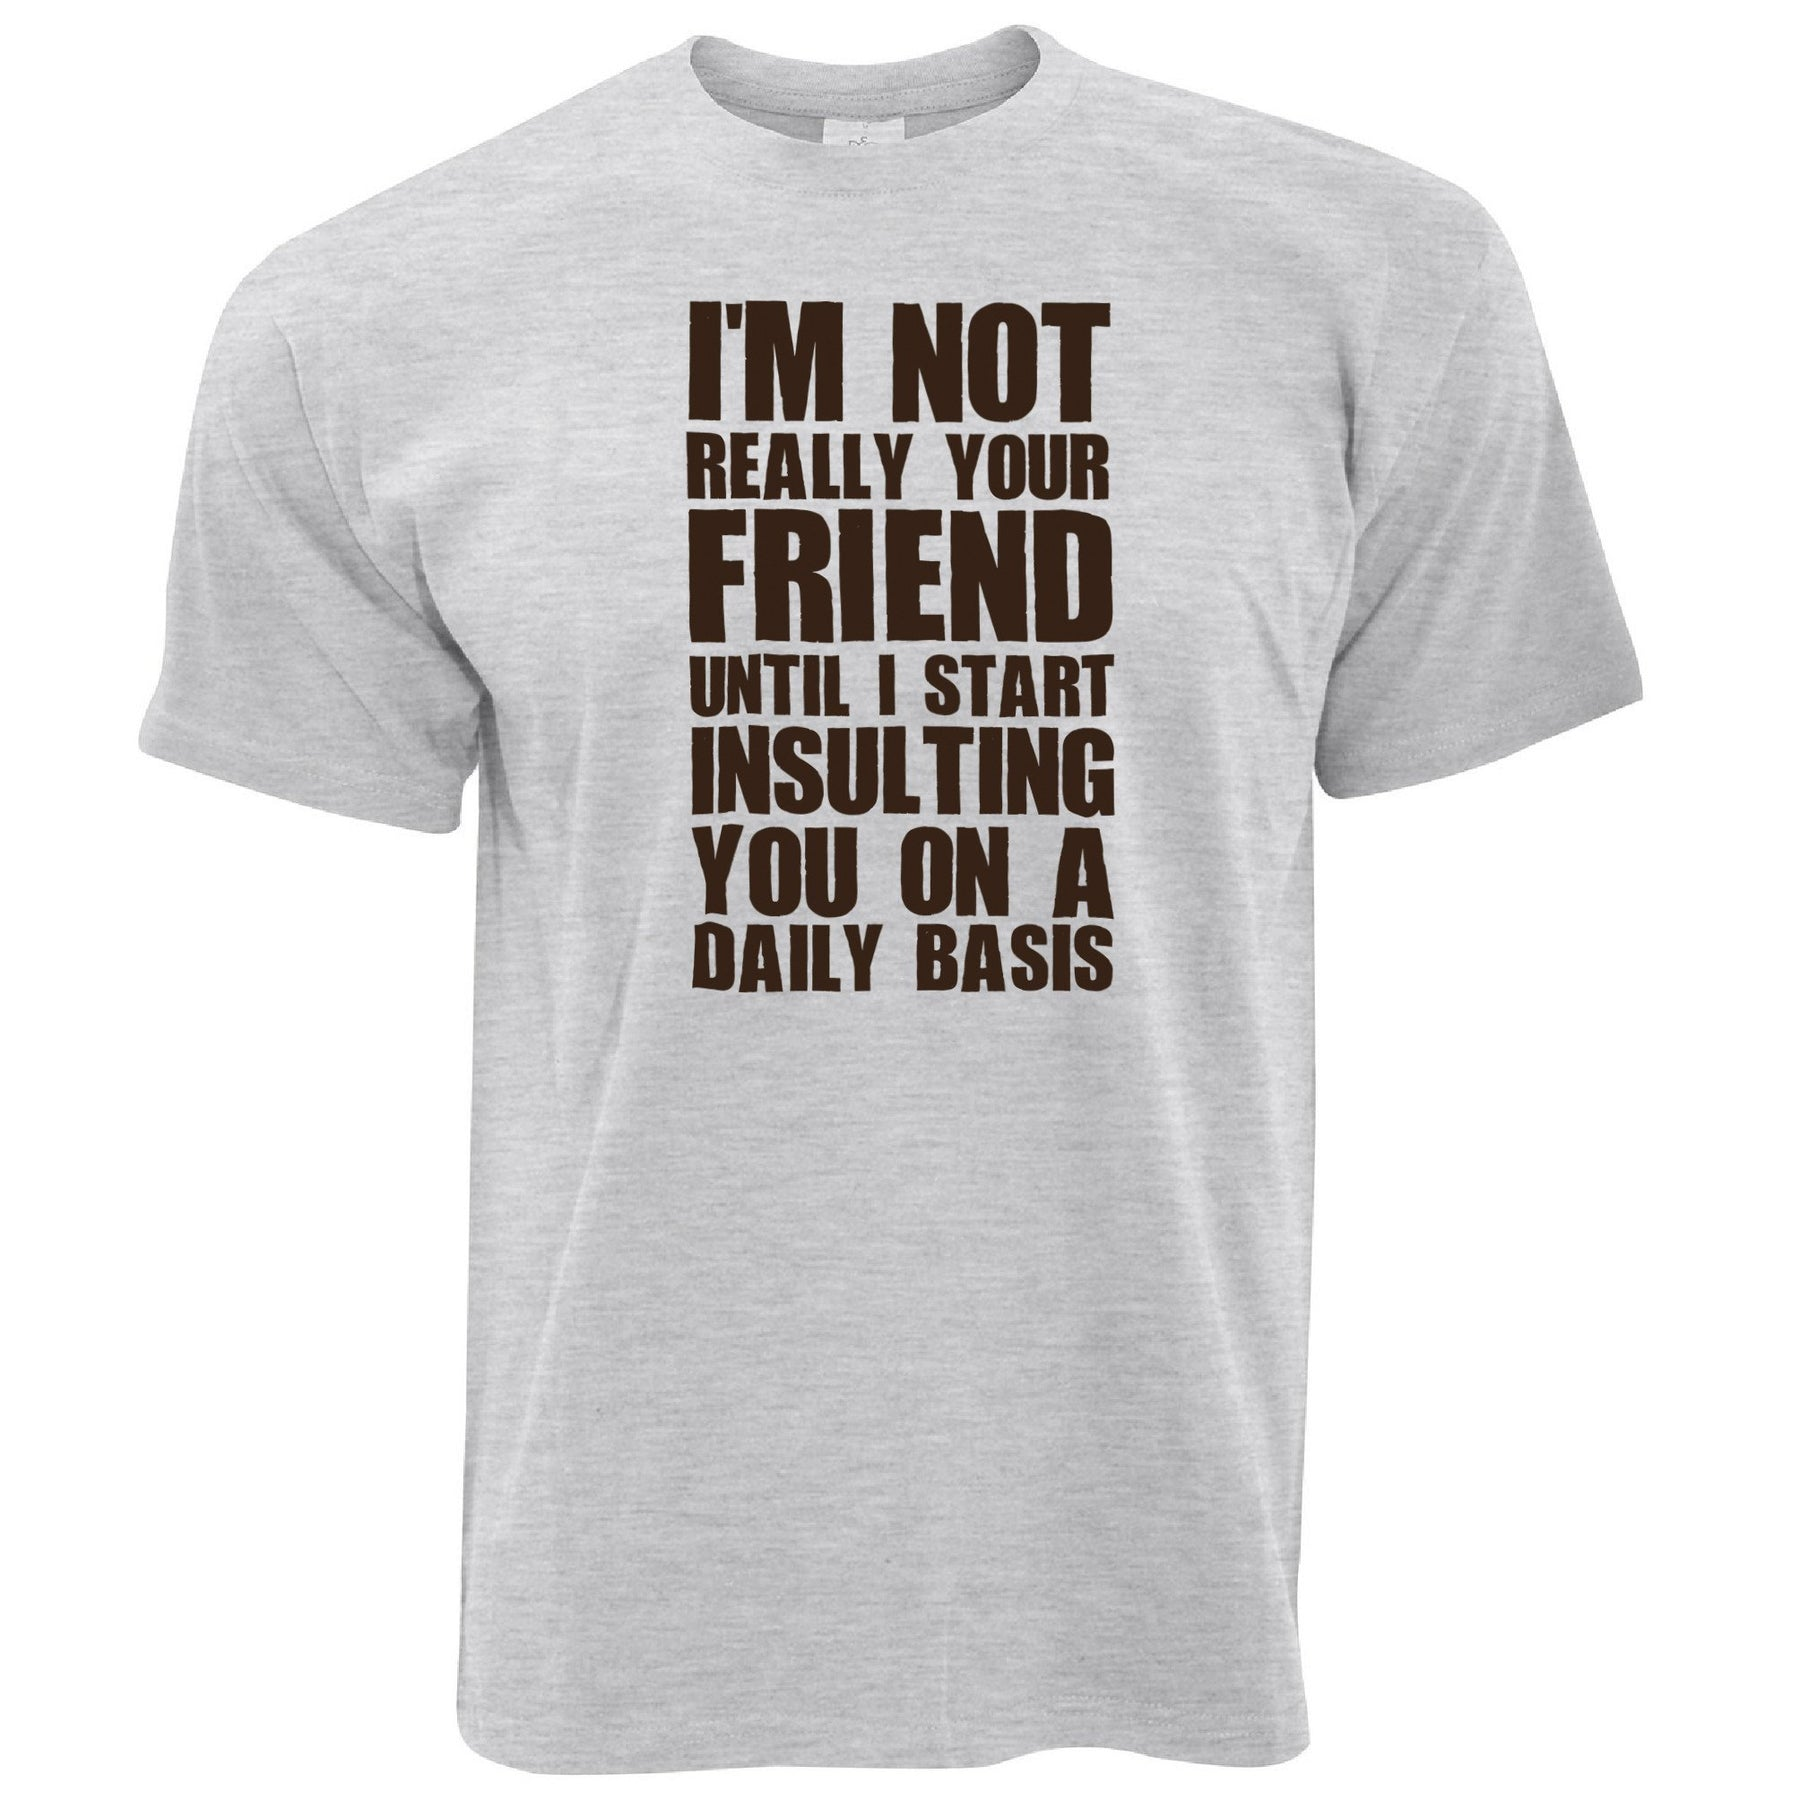 cc16949f Funny T Shirt I'm Not Your Friend Until I Insult You